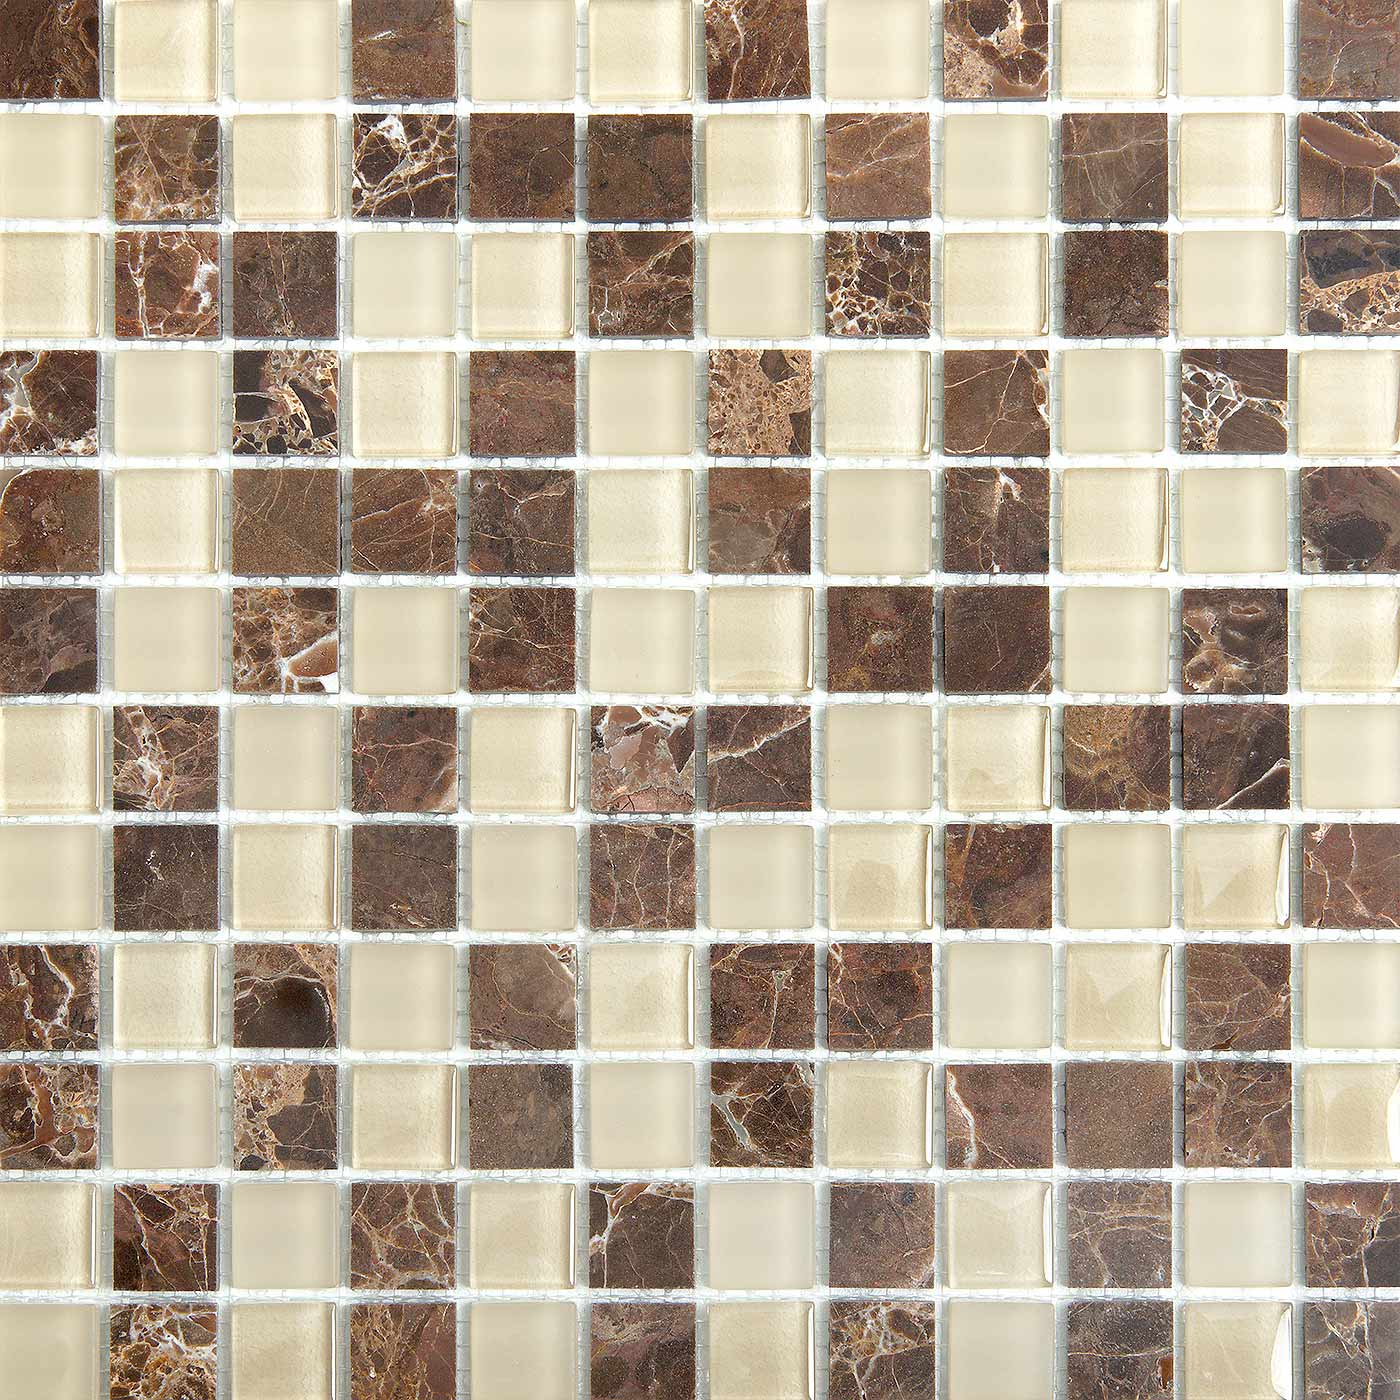 Maple 1703 Glass & Stone Blend Villi Glass Mosaic Tile, 1 sheet